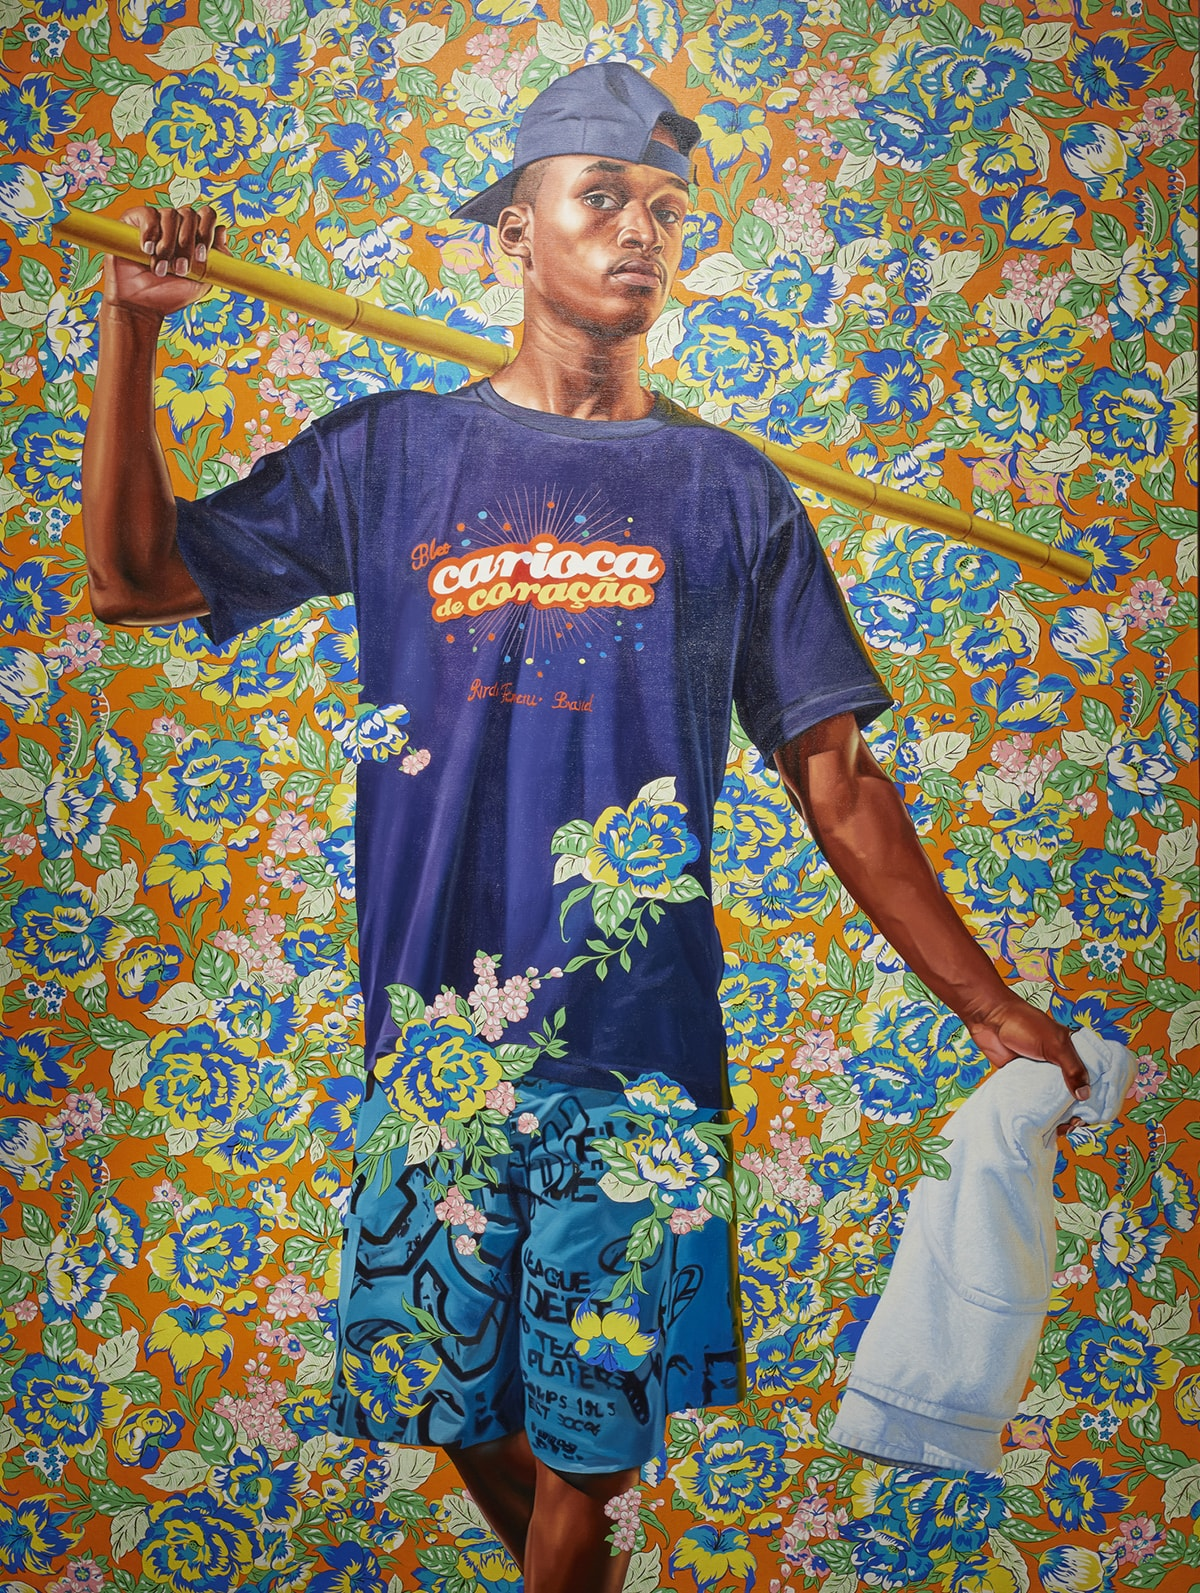 "An almost full-length portrait of a young, dark skinned man against a colorful, floral background. The figure is shown standing, facing the viewer or artist with the arm at left raised and bent at the elbow to create an L shape while holding a long stick of bamboo. The bamboo rests on the individual's neck and shoulder, passes behind his head and is seen extending to the right of the figure. The arm at right is held out from his side and in his hand is a white towel. The figure gazes directly out, head turned slightly to the right with a neutral expression. He wears a backwards blue ballcap and a blue t-shirt with the Portuguese phrase ""Bleo, carioca de coracao"". He wears knee length light blue shorts on which are printed phrases and large letters in black. The portrait ends at the figure's mid-calf. Surrounding him are large blue and yellow flowers with green leaves on an orange background. The overall effect is very busy. Some of the floral pattern is superimposed over the figure's shorts at the lower hem and hip area and the shirt at the mid-section."